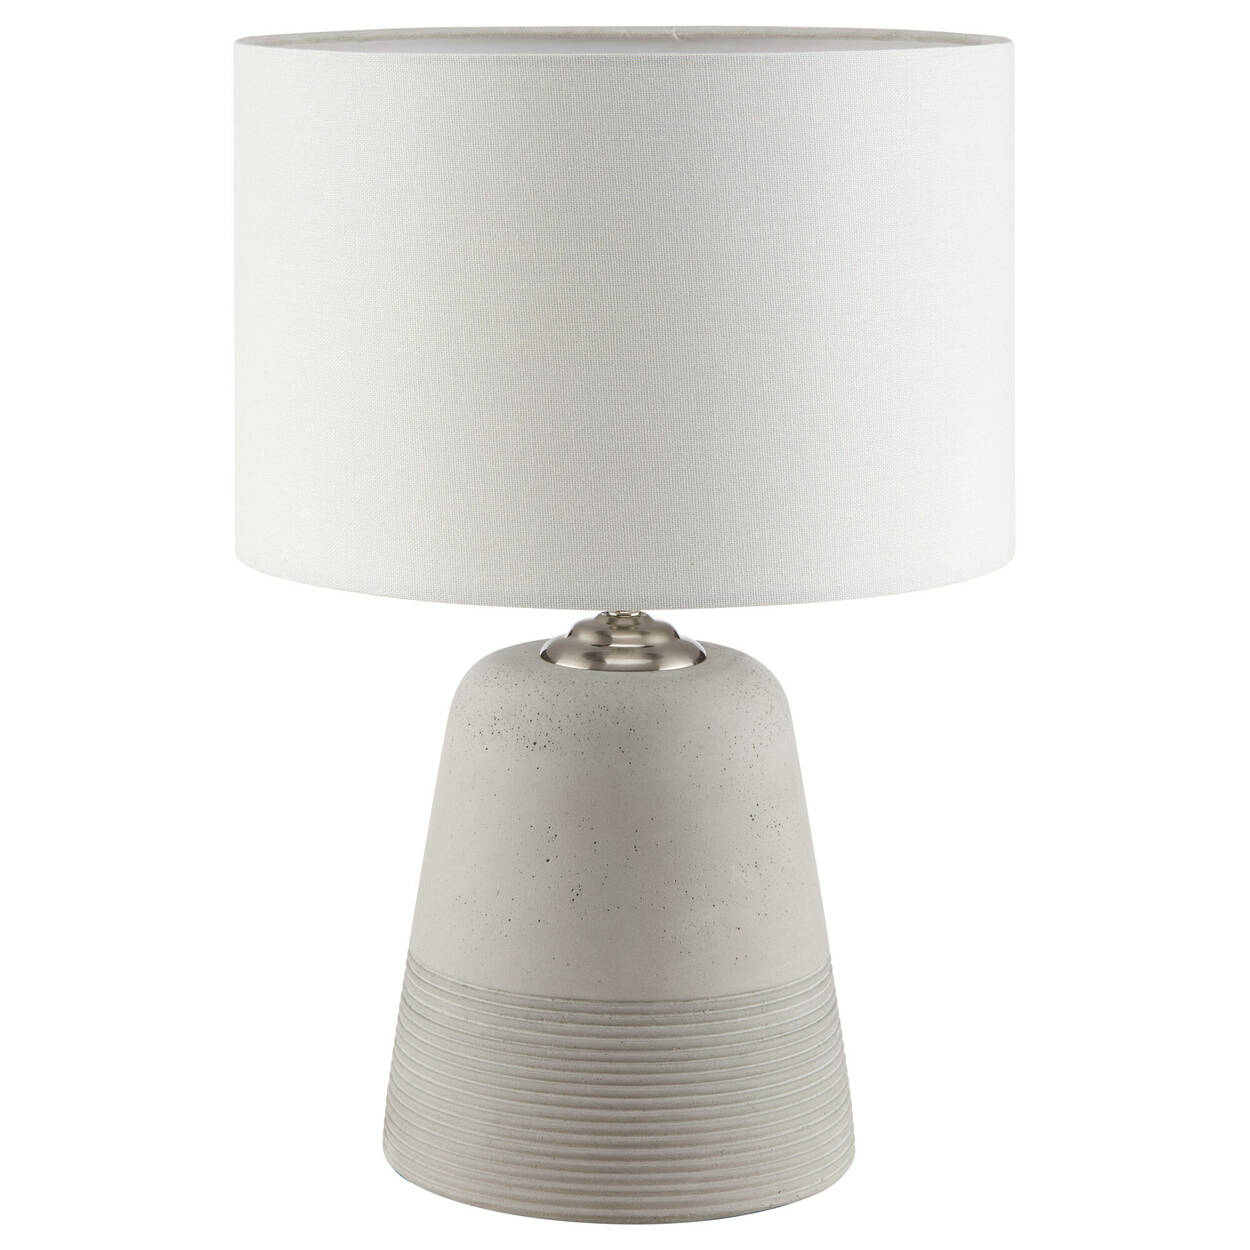 Two Toned Cement Table Lamp